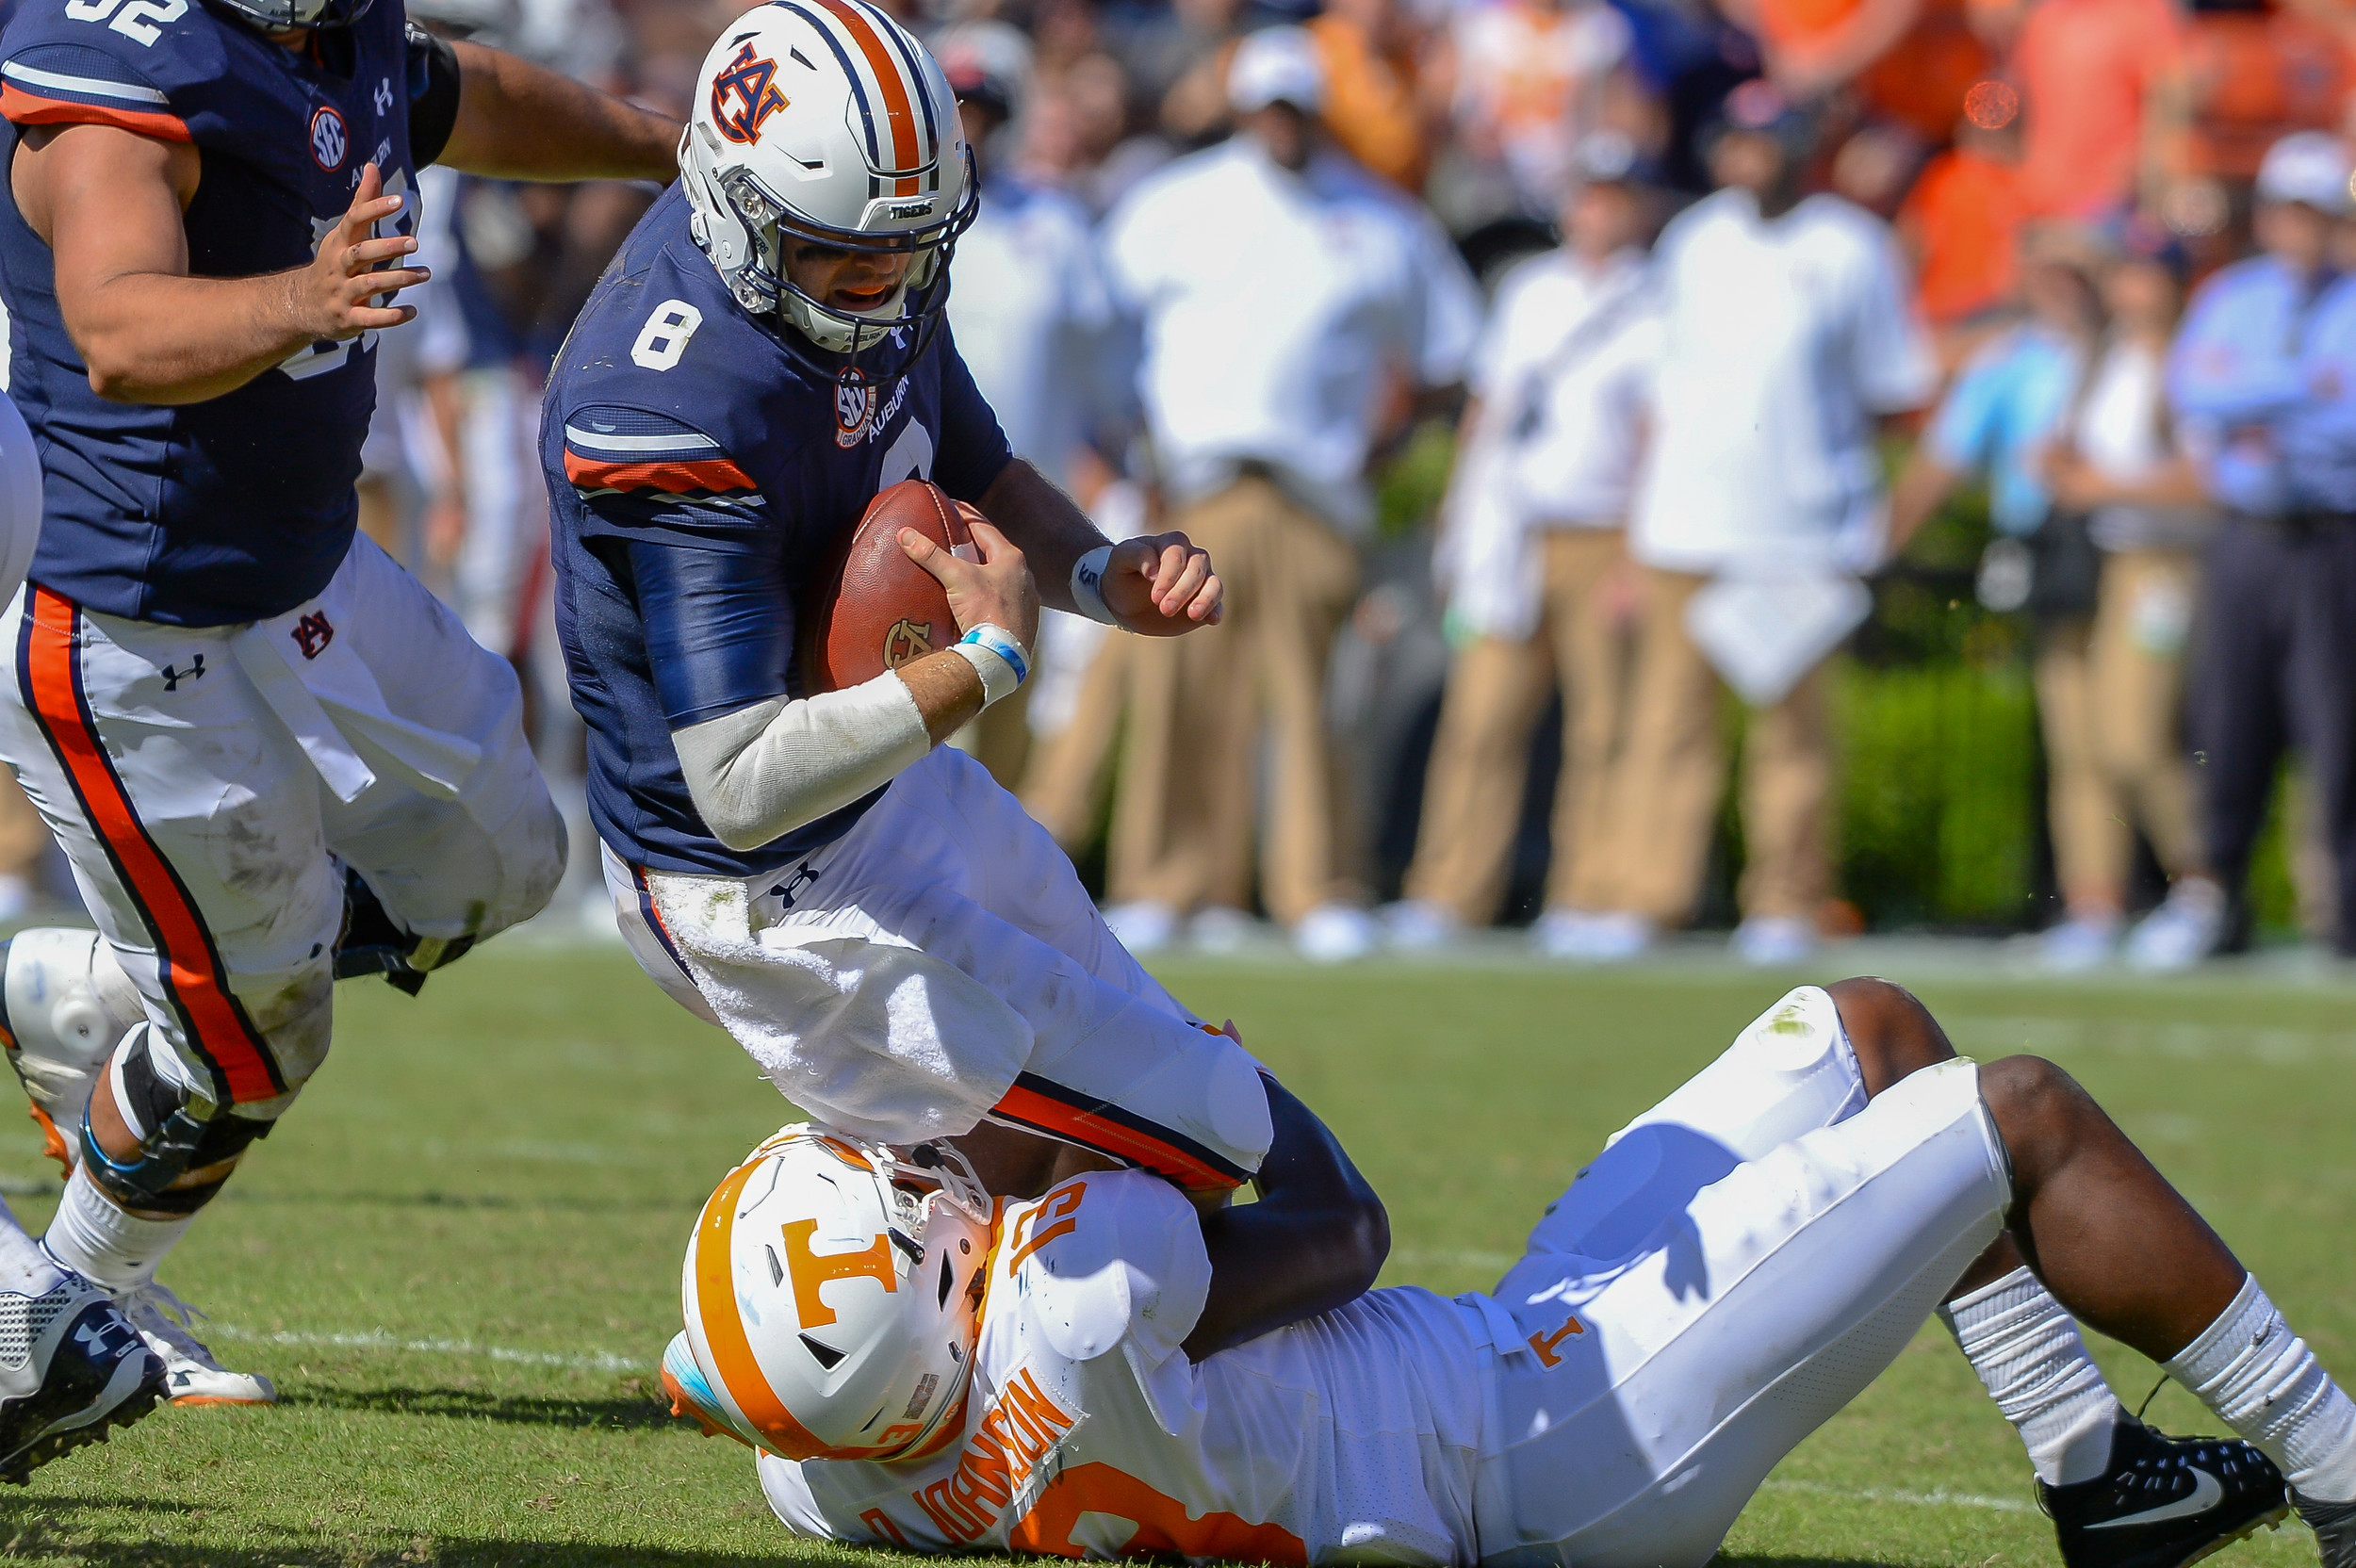 Auburn Tigers quarterback Jarrett Stidham (8) is brought down by Tennessee Volunteers linebacker Deandre Johnson (13) during the second half of Saturday's game, at Jordan-Hare Stadium in Auburn, AL. Daily Mountain Eagle -  Jeff Johnsey